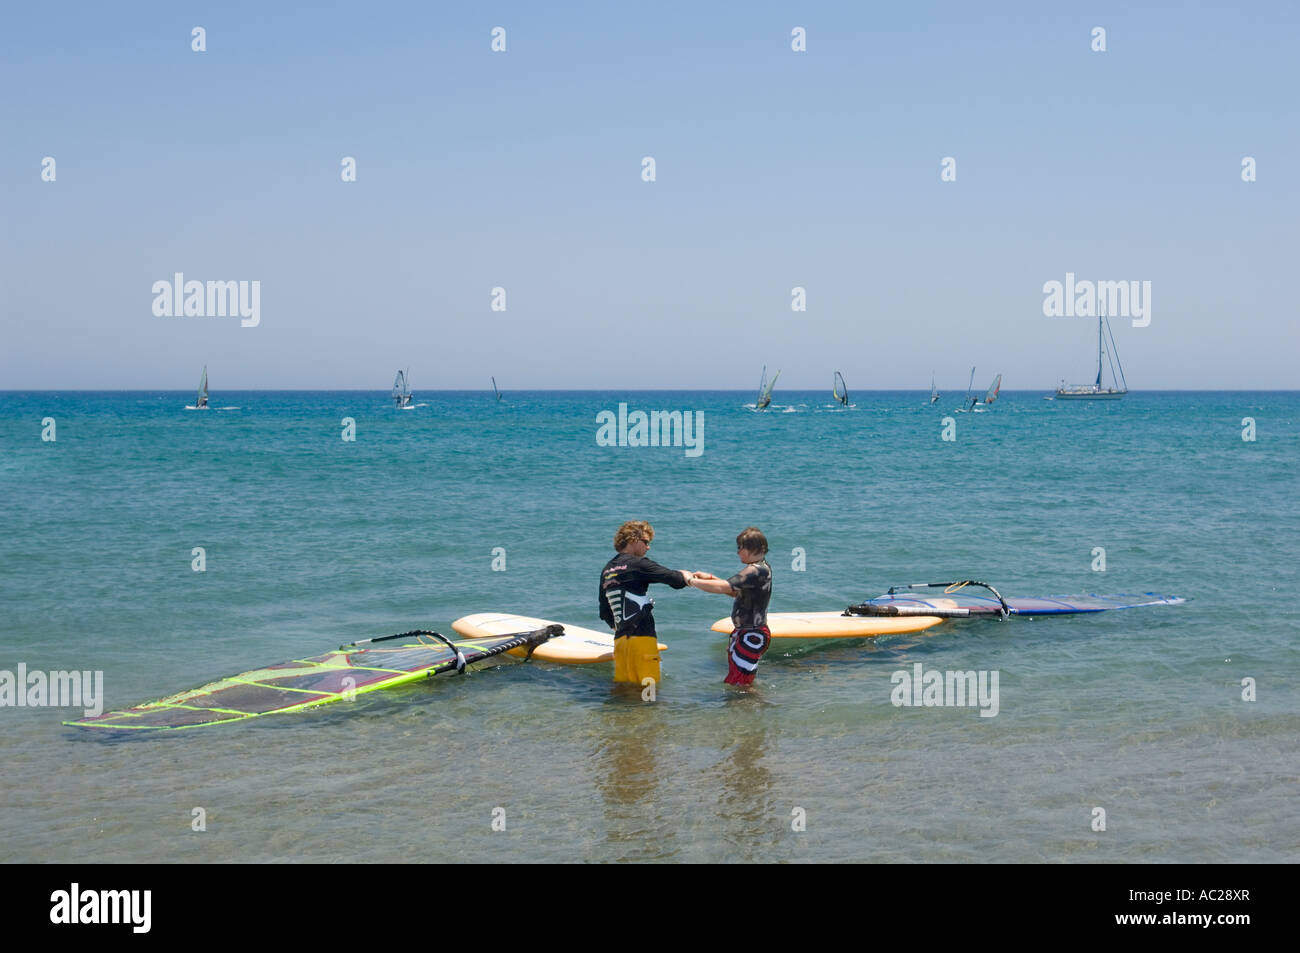 A windsurfing instuctor teaching a student the basic skills of the sport with windsurfers in the background. - Stock Image